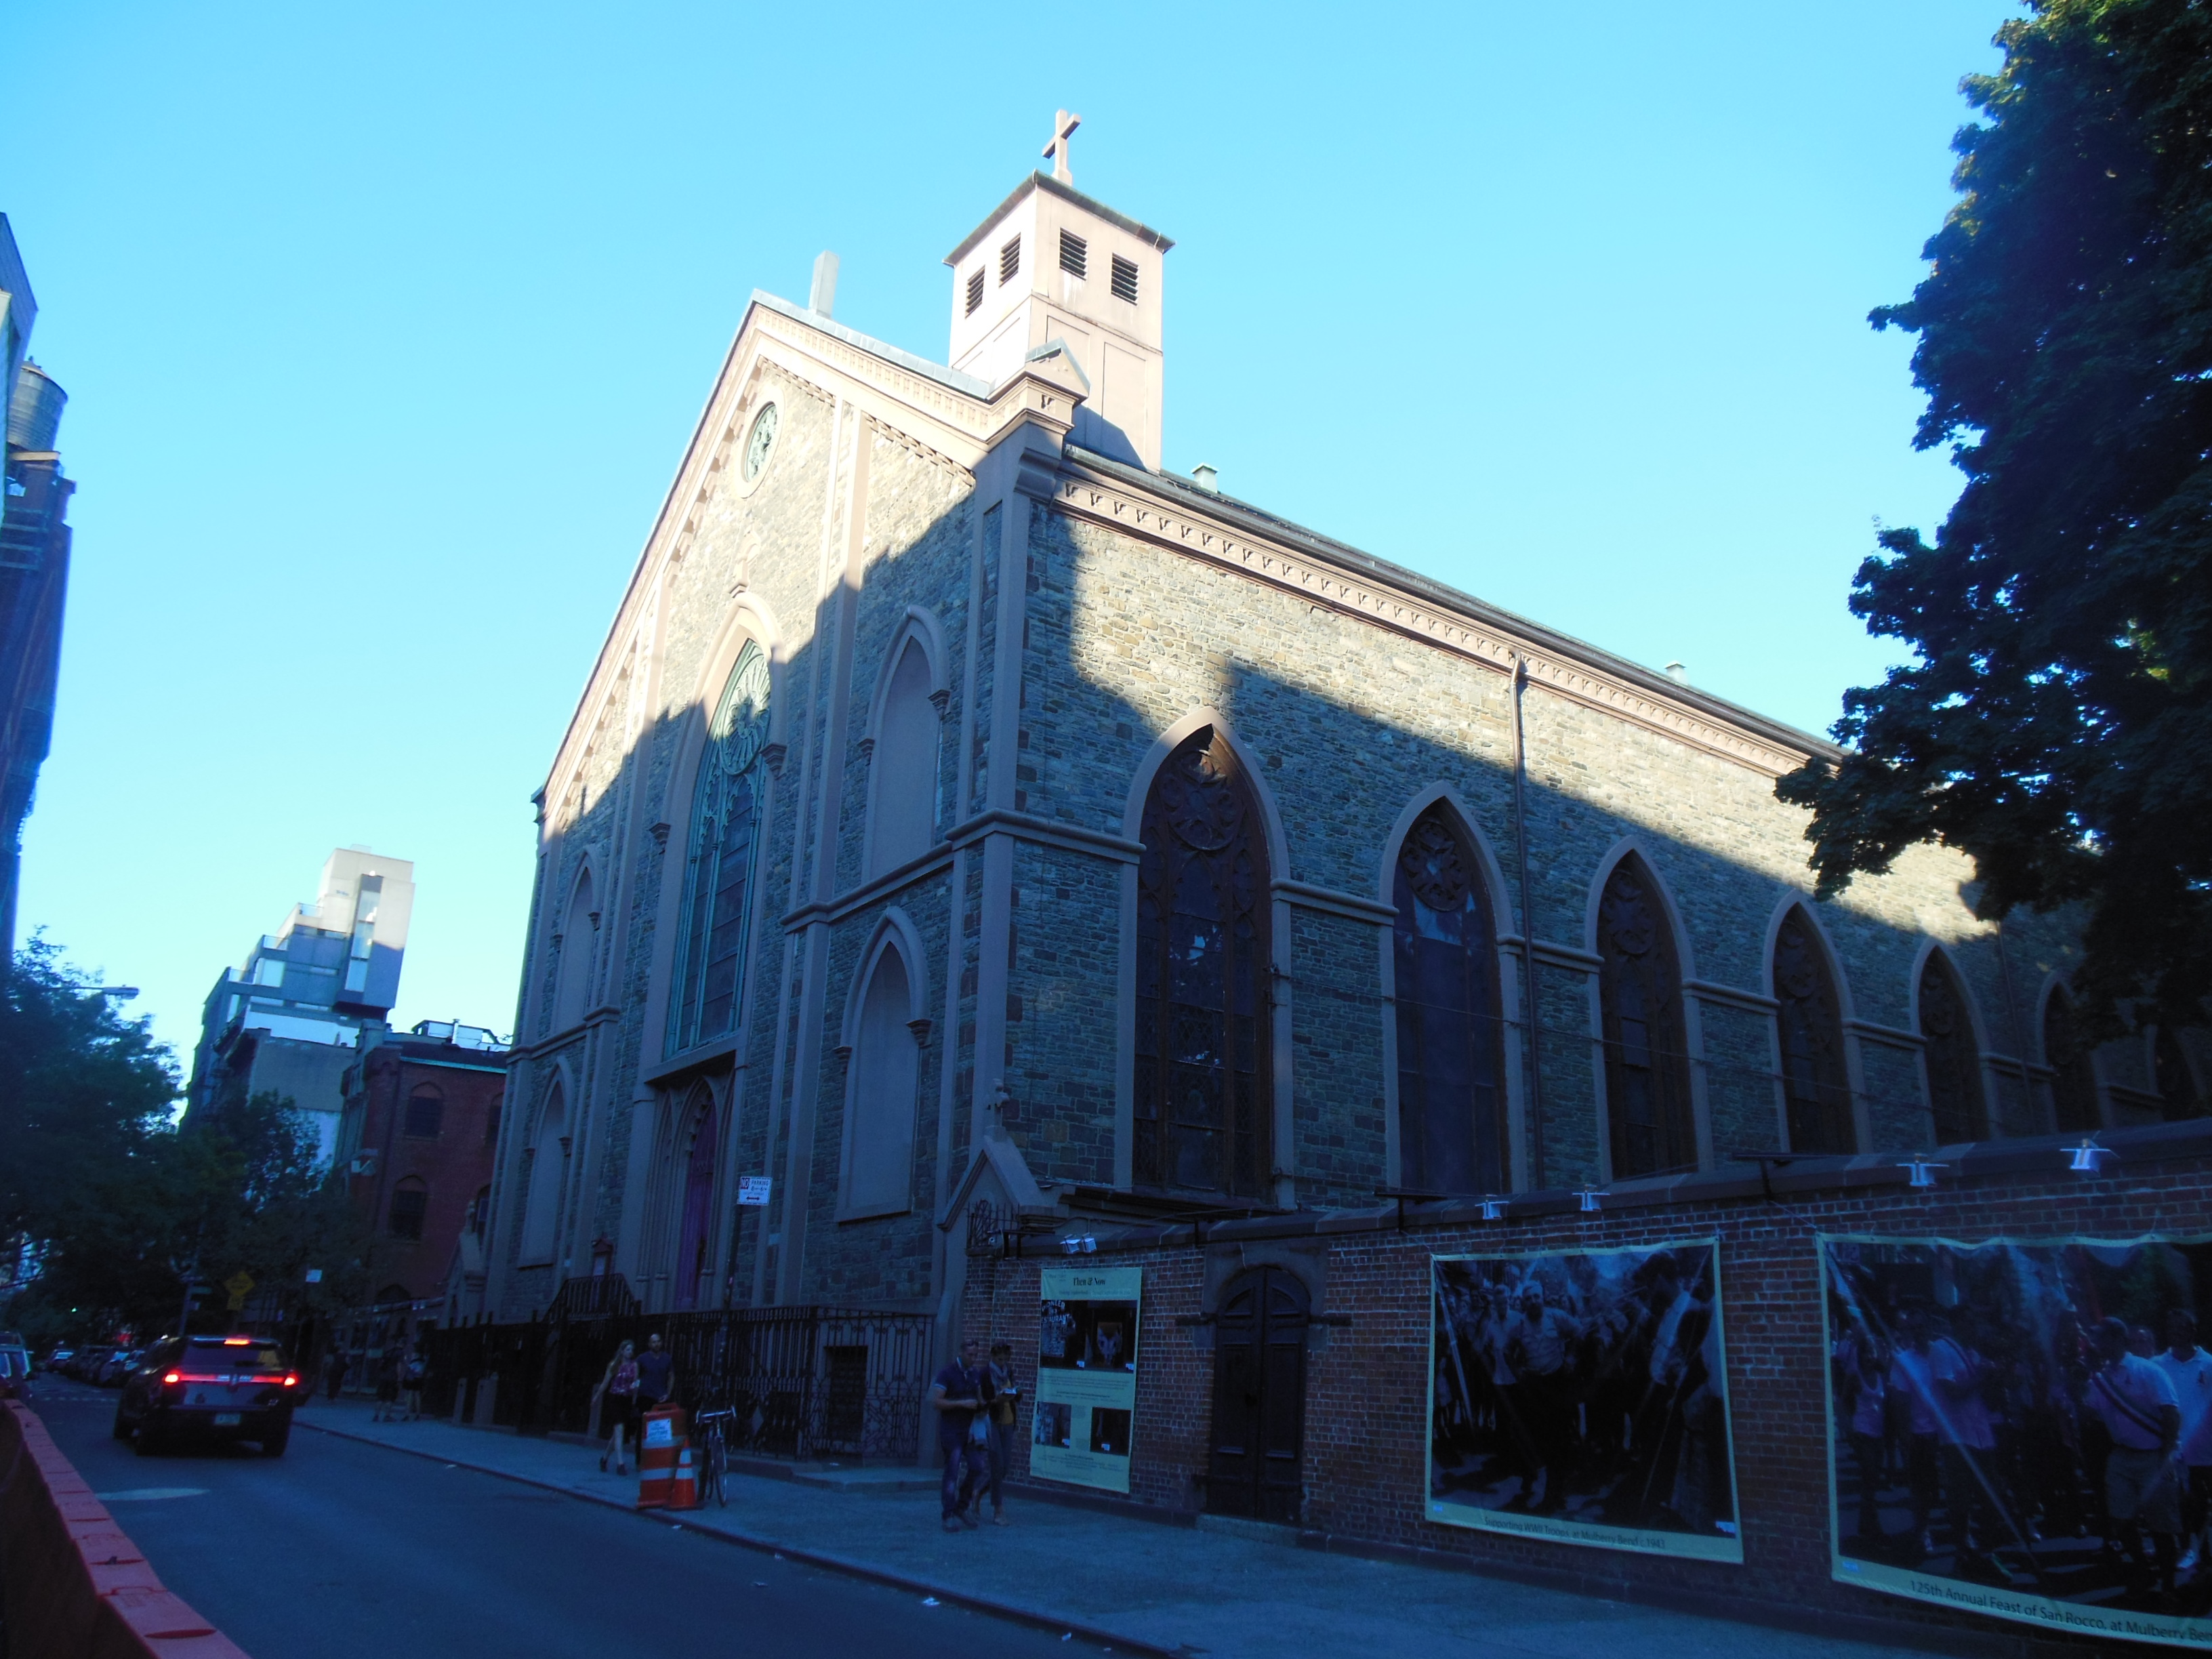 Looking northeast at the front (Mulberry Street) side of St. Patricks Old Cathedral